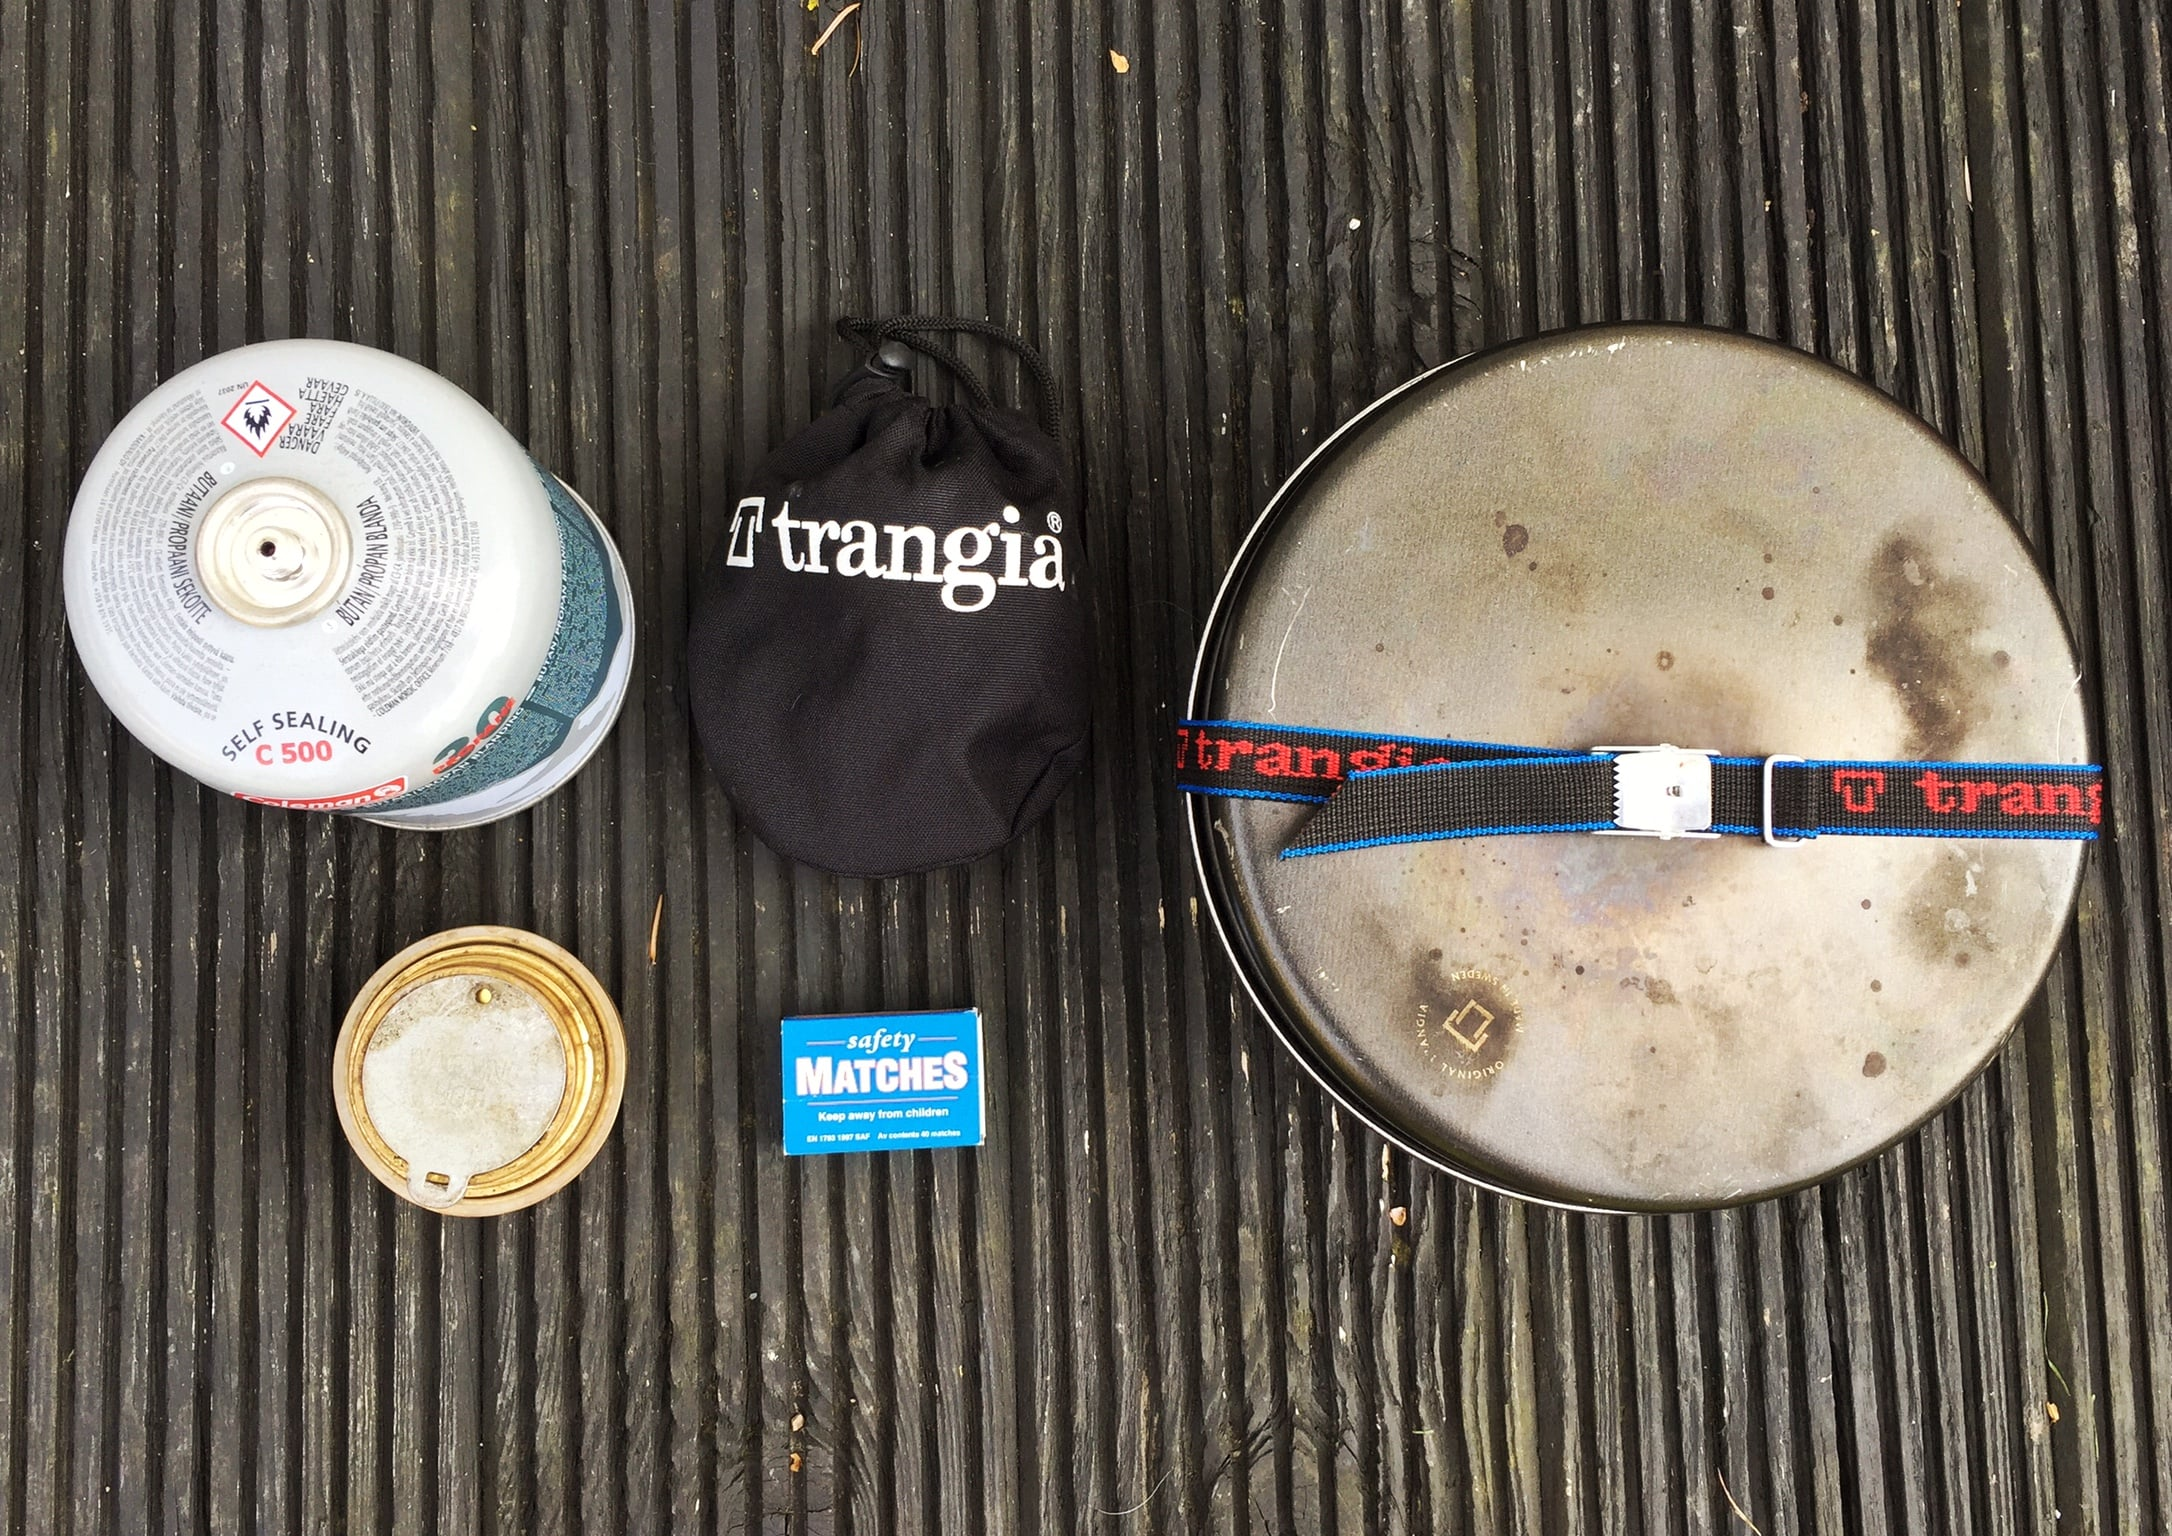 How to: Use a Trangia